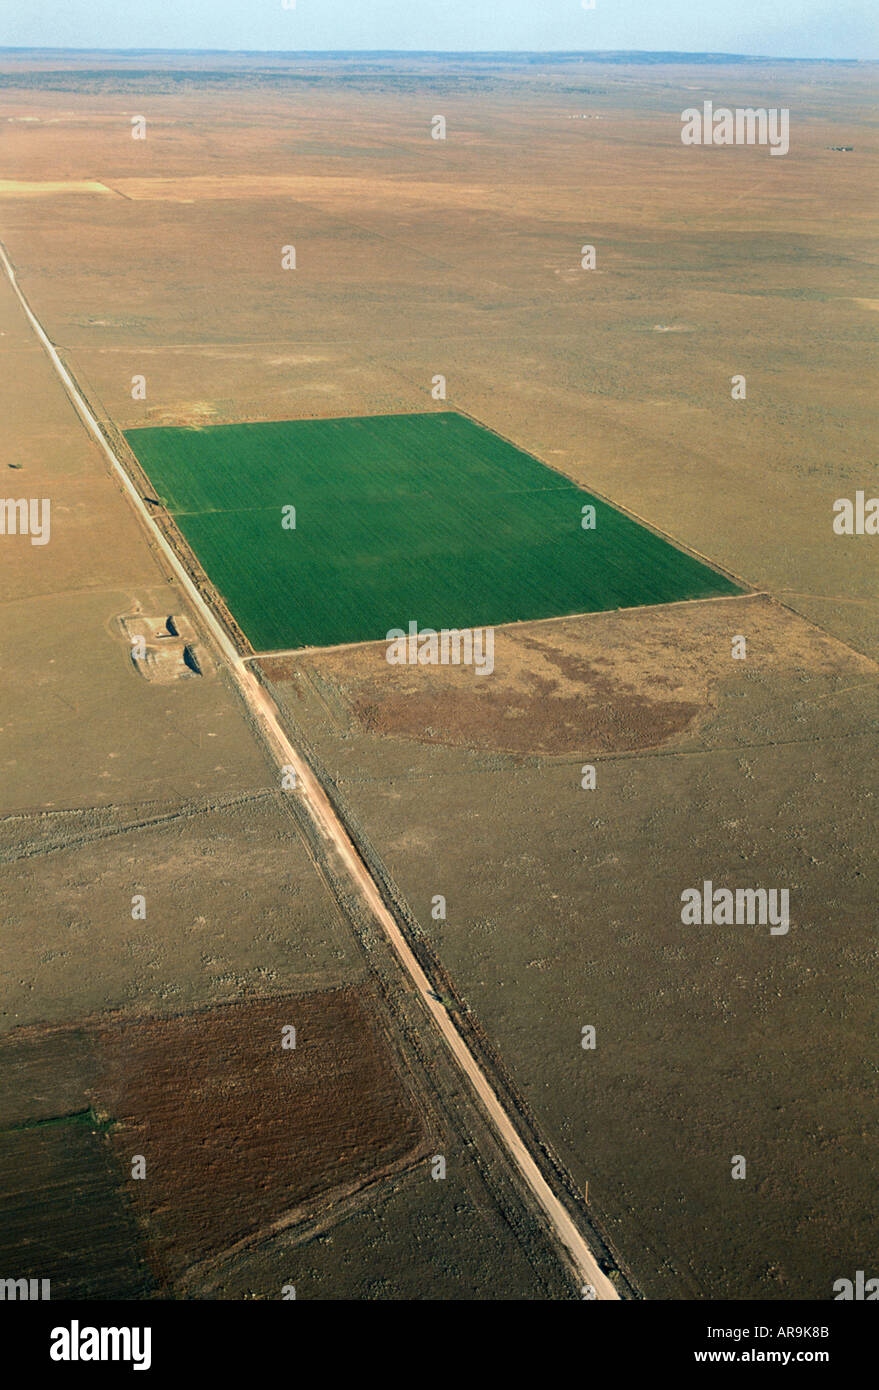 aerial view of desert irrigation farming agriculture oasis